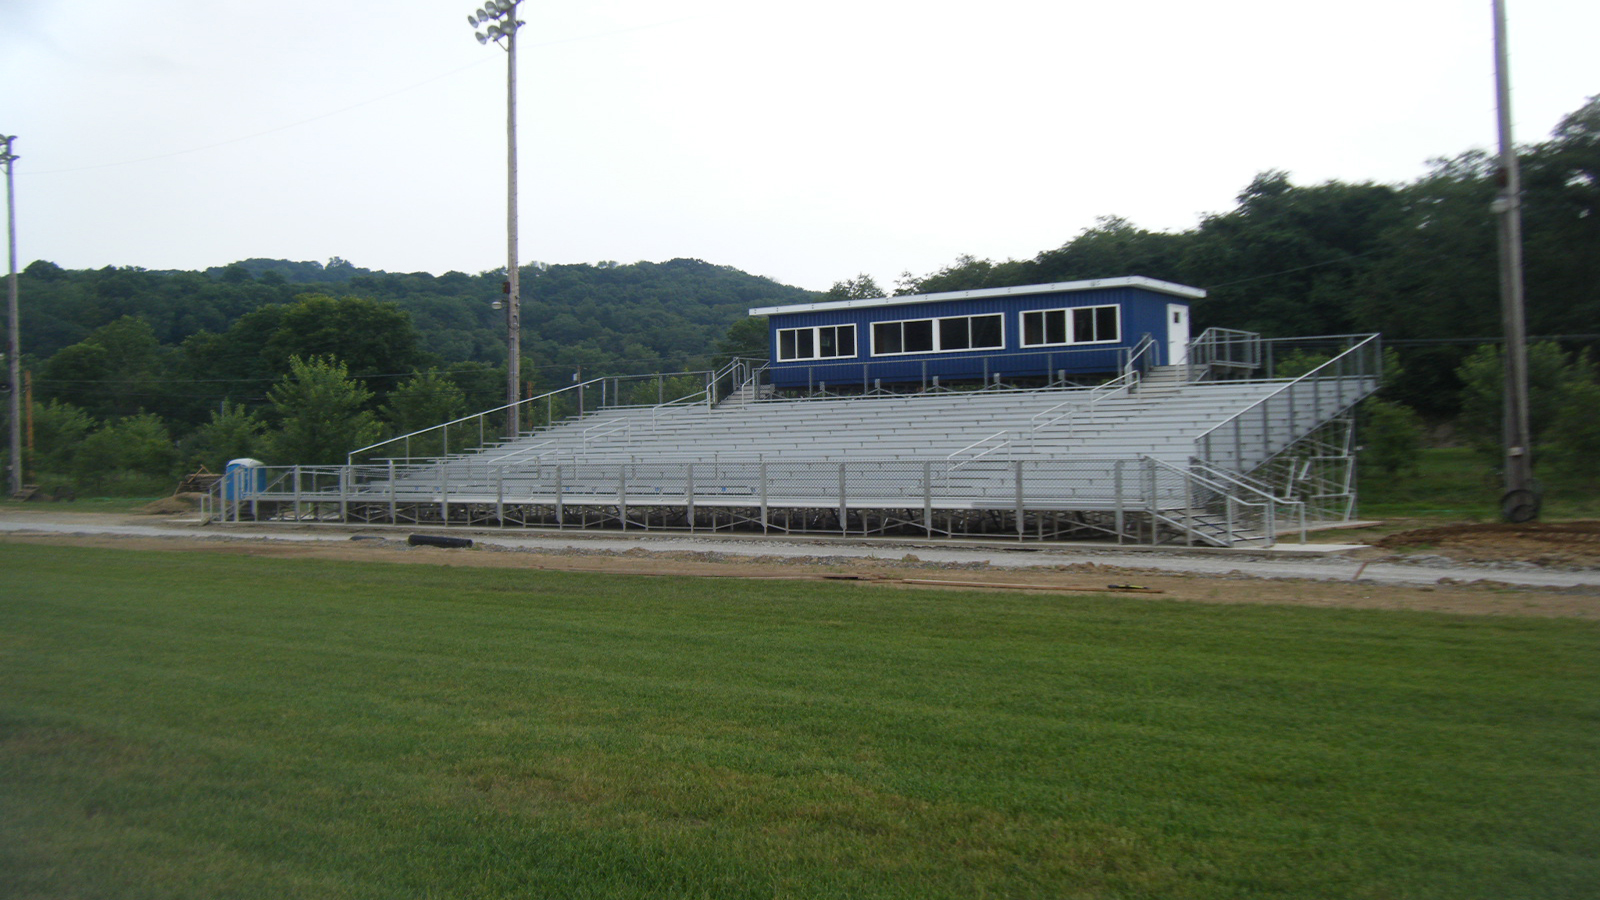 West Greene High School Football Bleachers